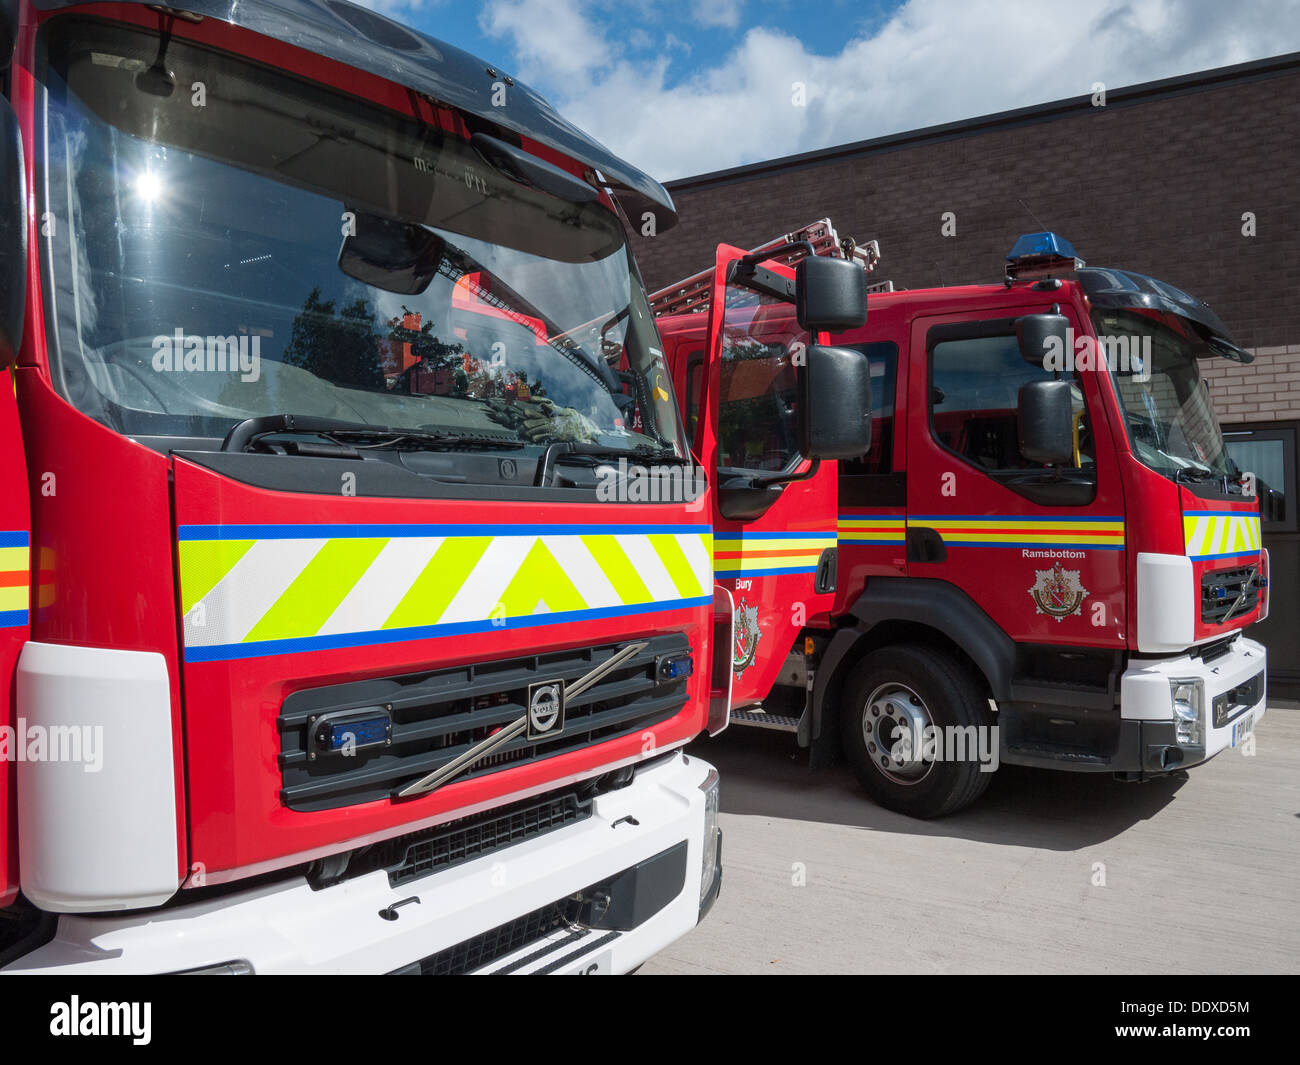 Two fire appliances at a fire station open day in Bury, Lancashire - Stock Image